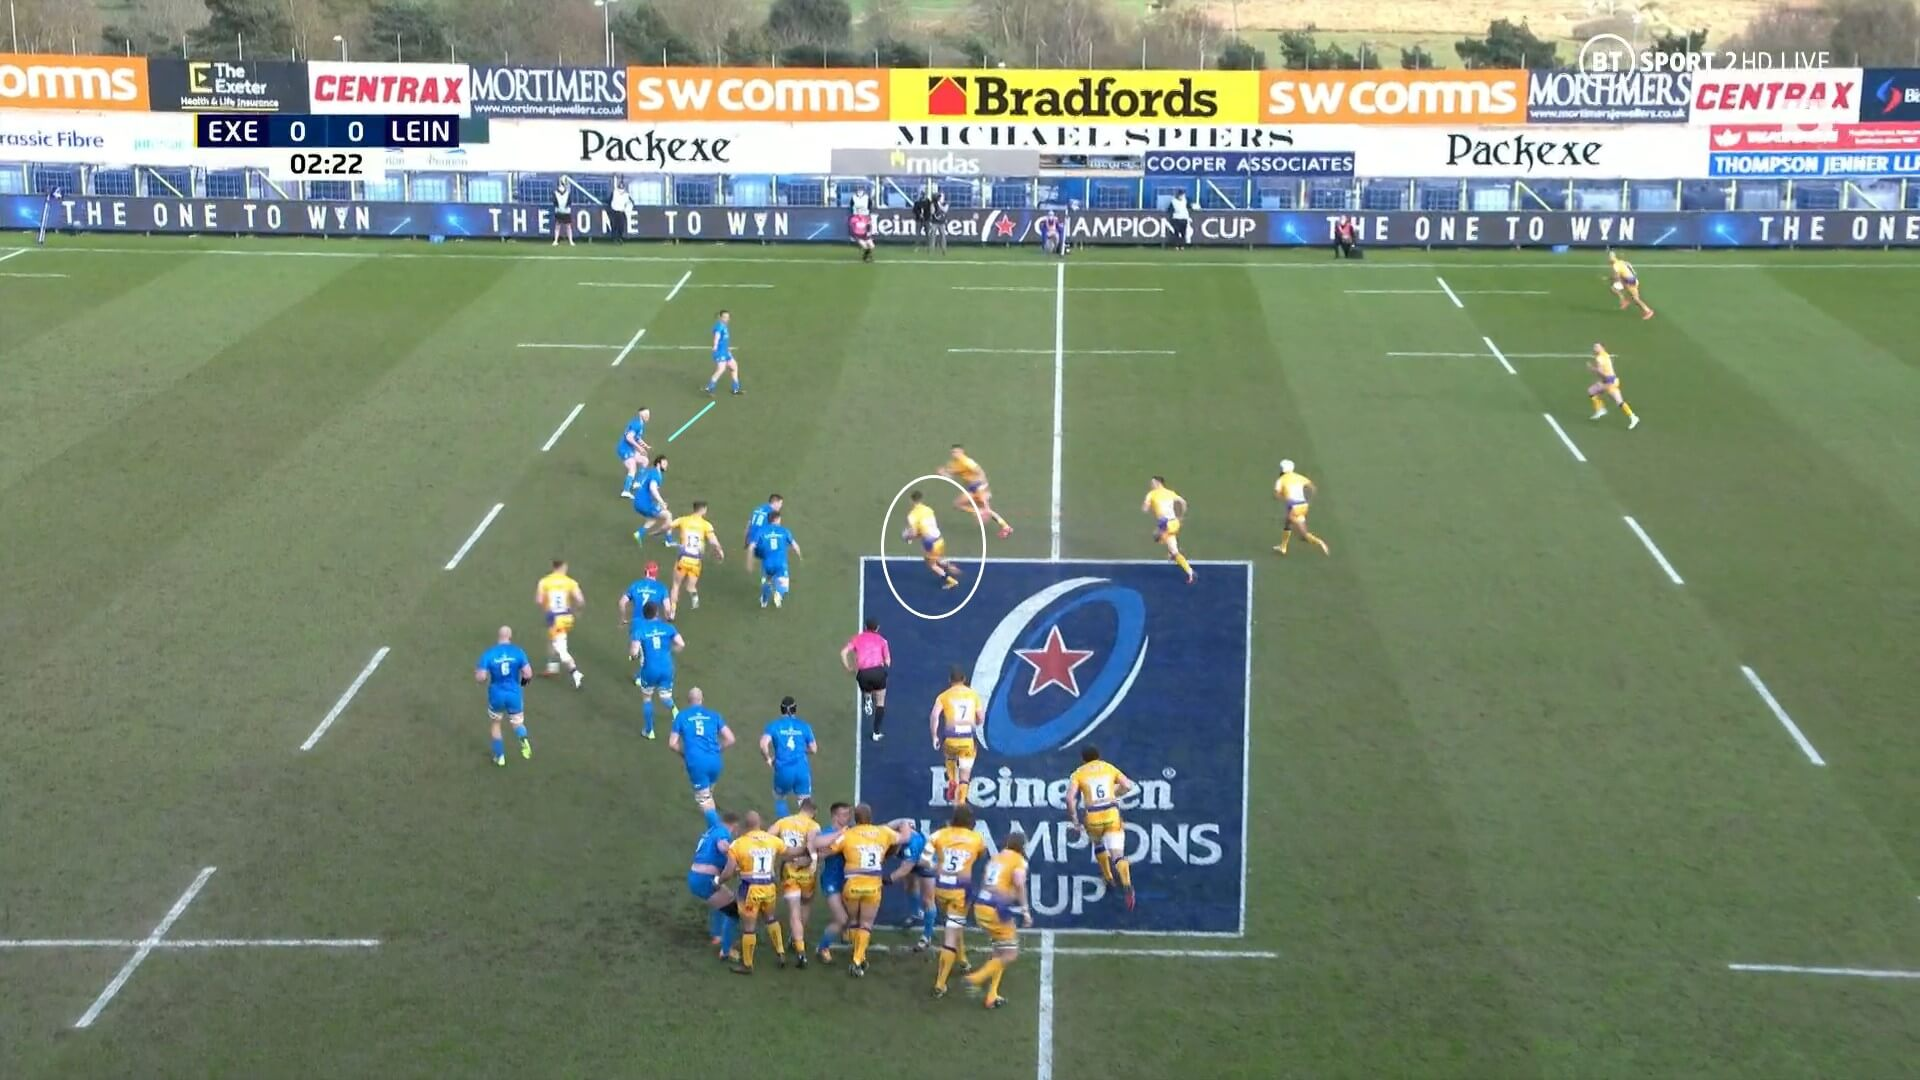 European Rugby Champions Cup 2020/2021: Exeter Chiefs v Leinster - tactical analysis tactics